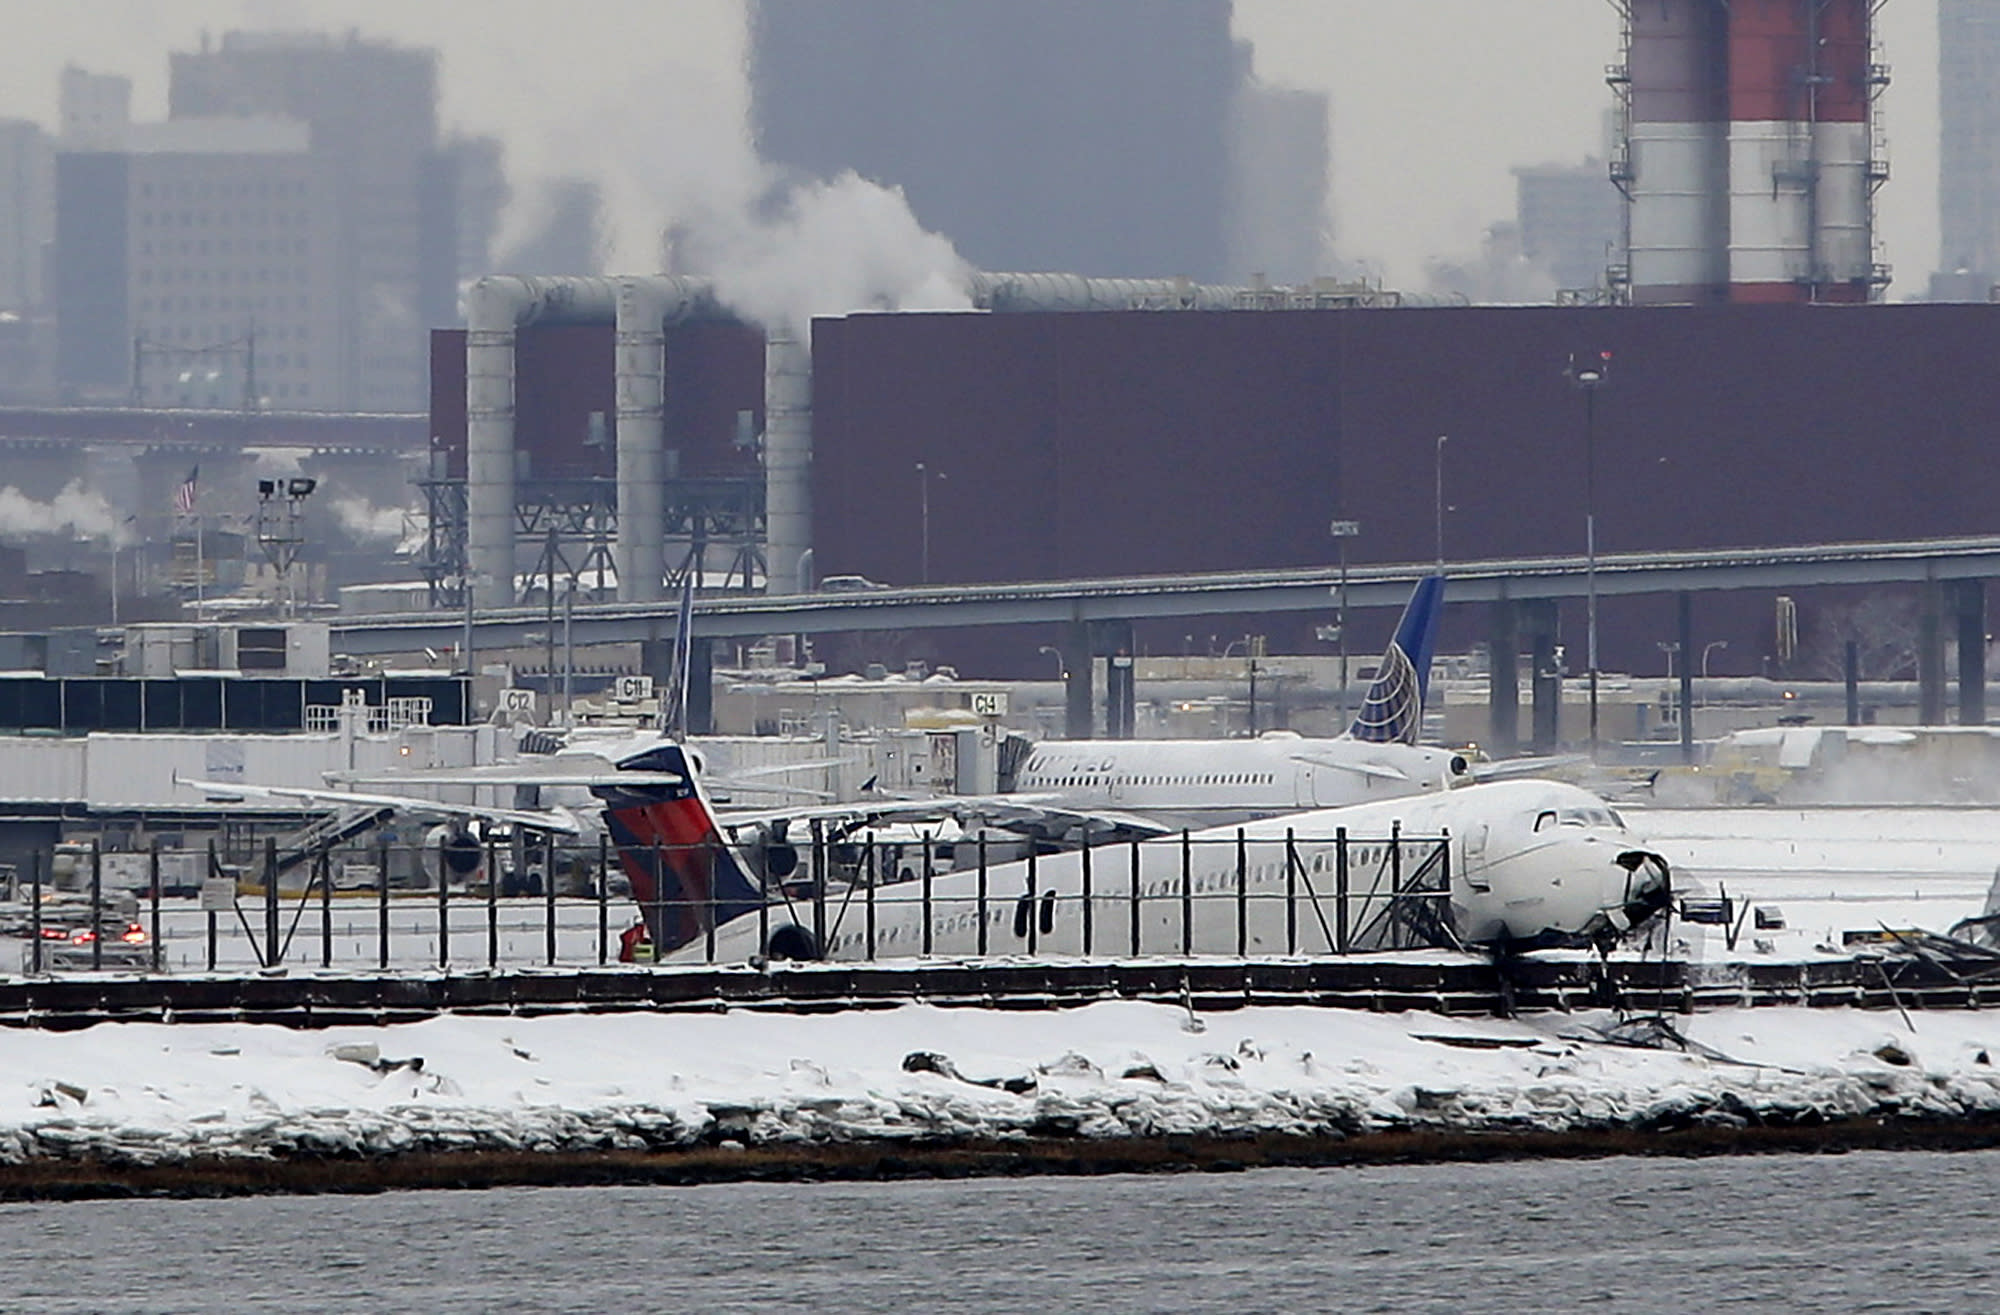 Plane skids off LaGuardia runway, slams into fence near bay